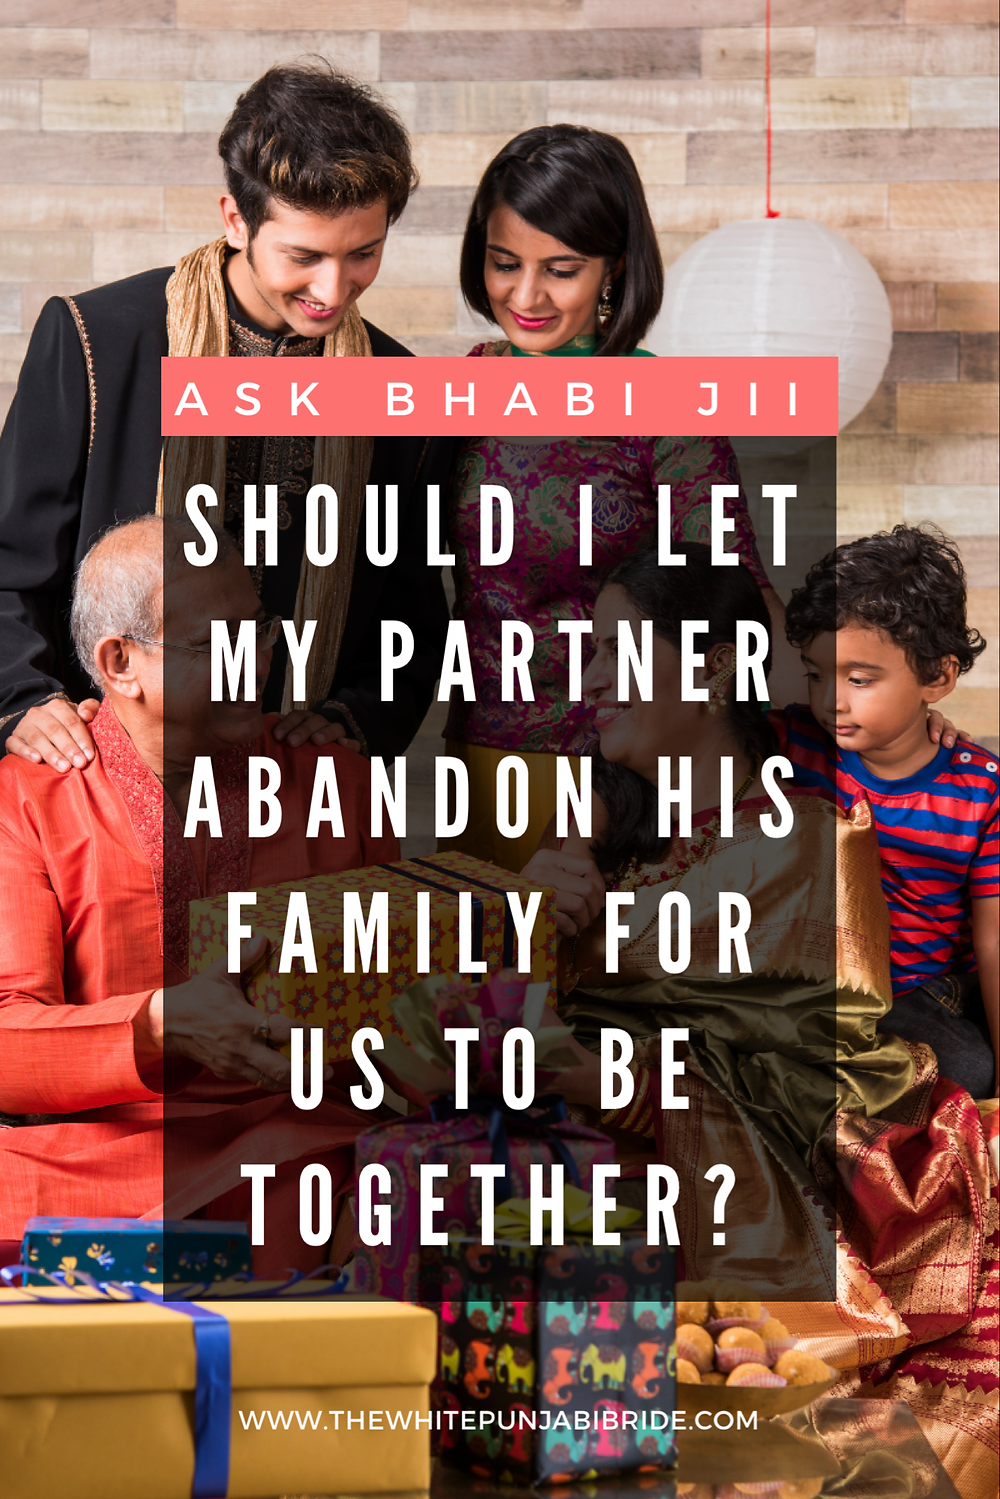 Ask Bhabi Jii: Should I Let My Partner Abandon His Family For Us To Be Together?